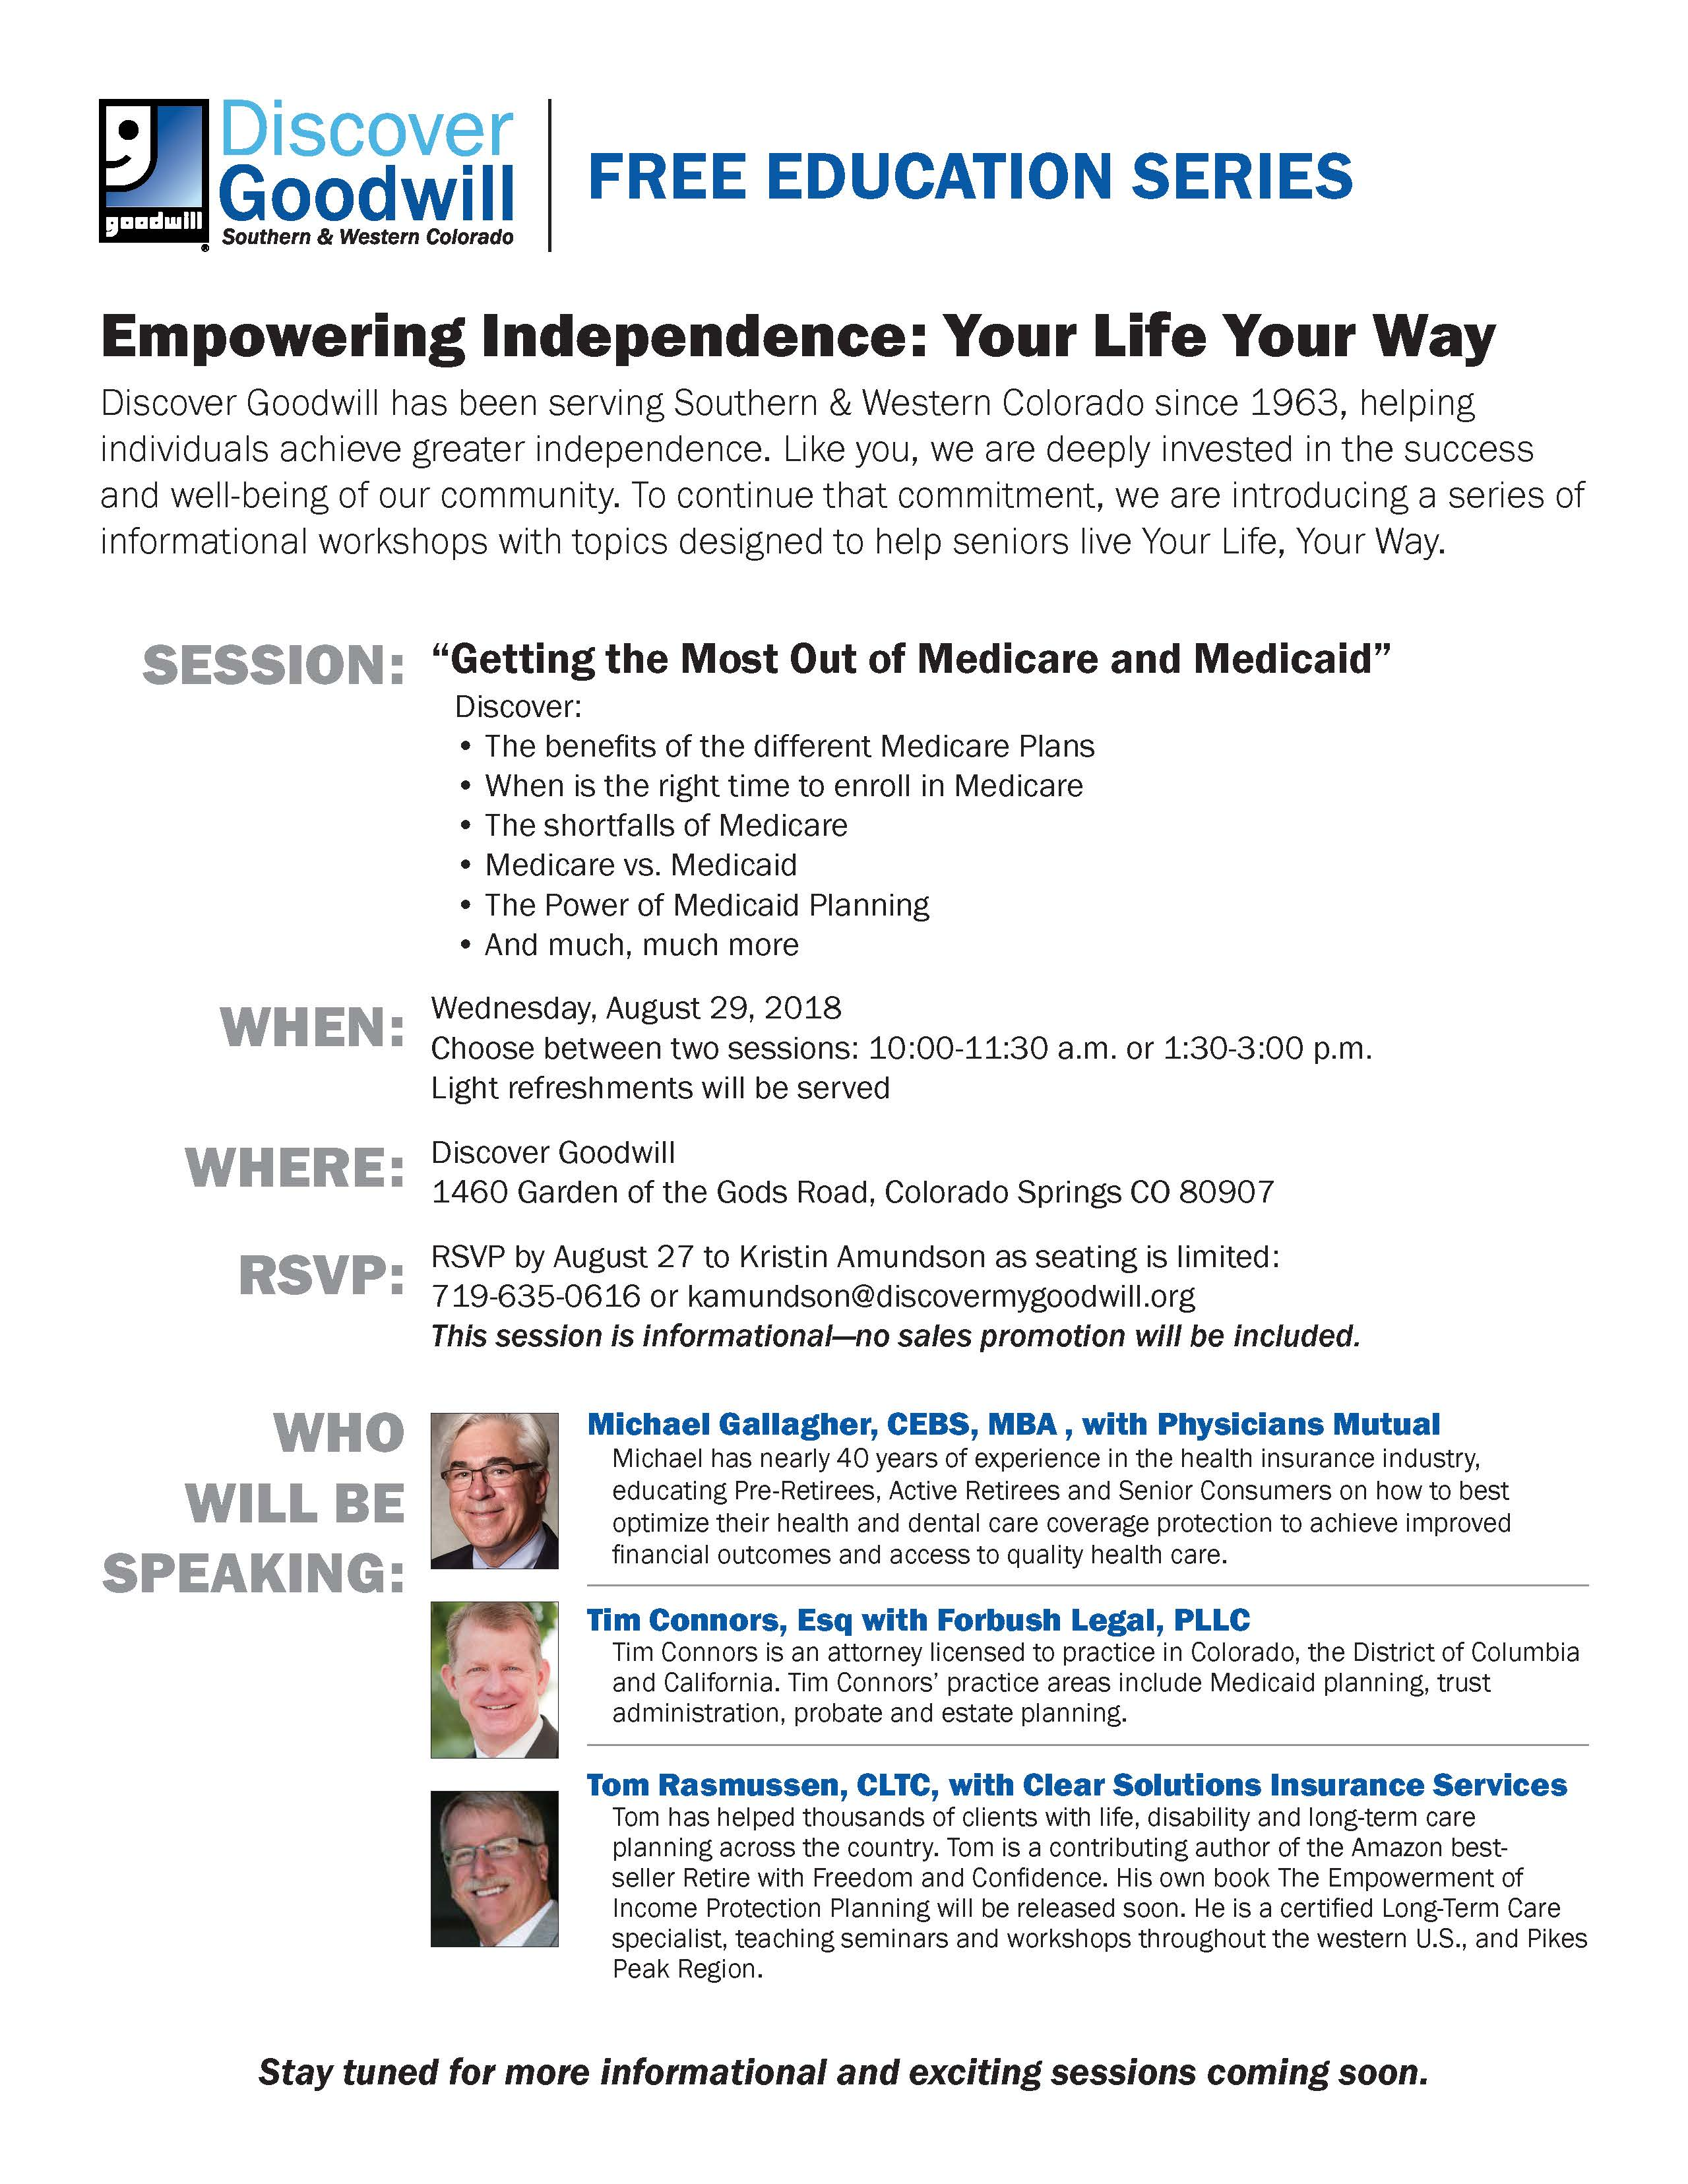 getting the most out of medicare and medicaid presented by discover